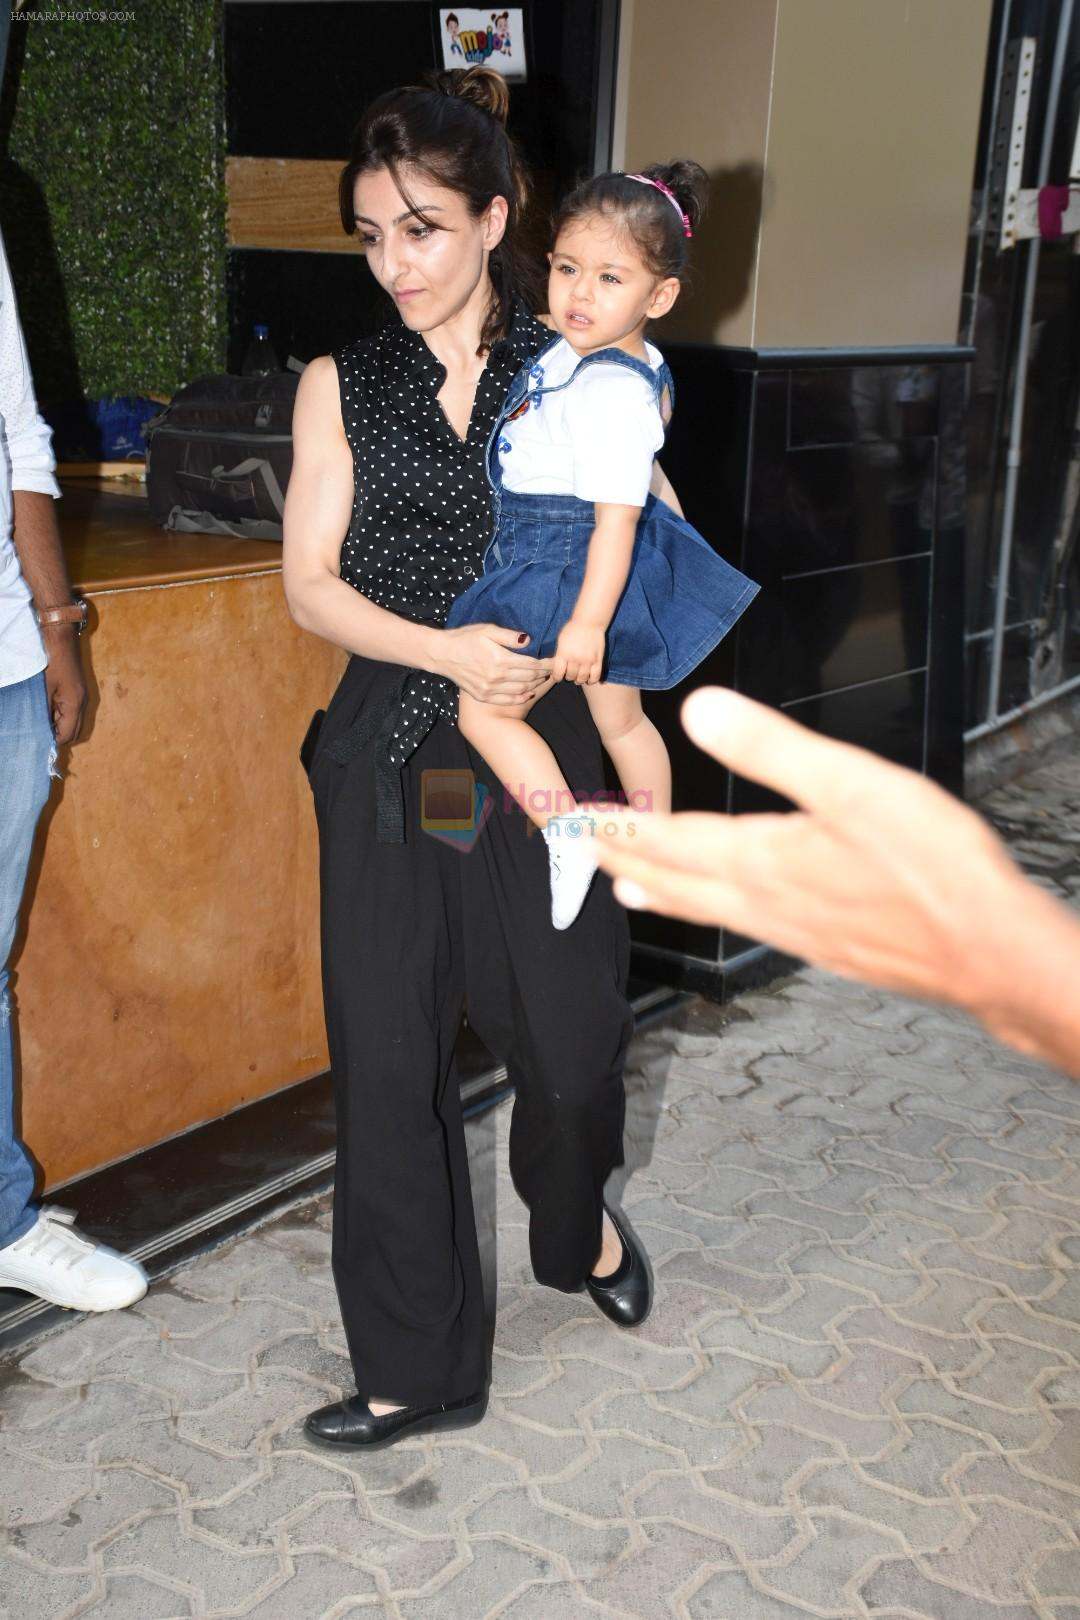 Soha Ali Khan at the Birthday celebration of Tusshar Kapoor's son Lakshya at bandra on 1st June 2019